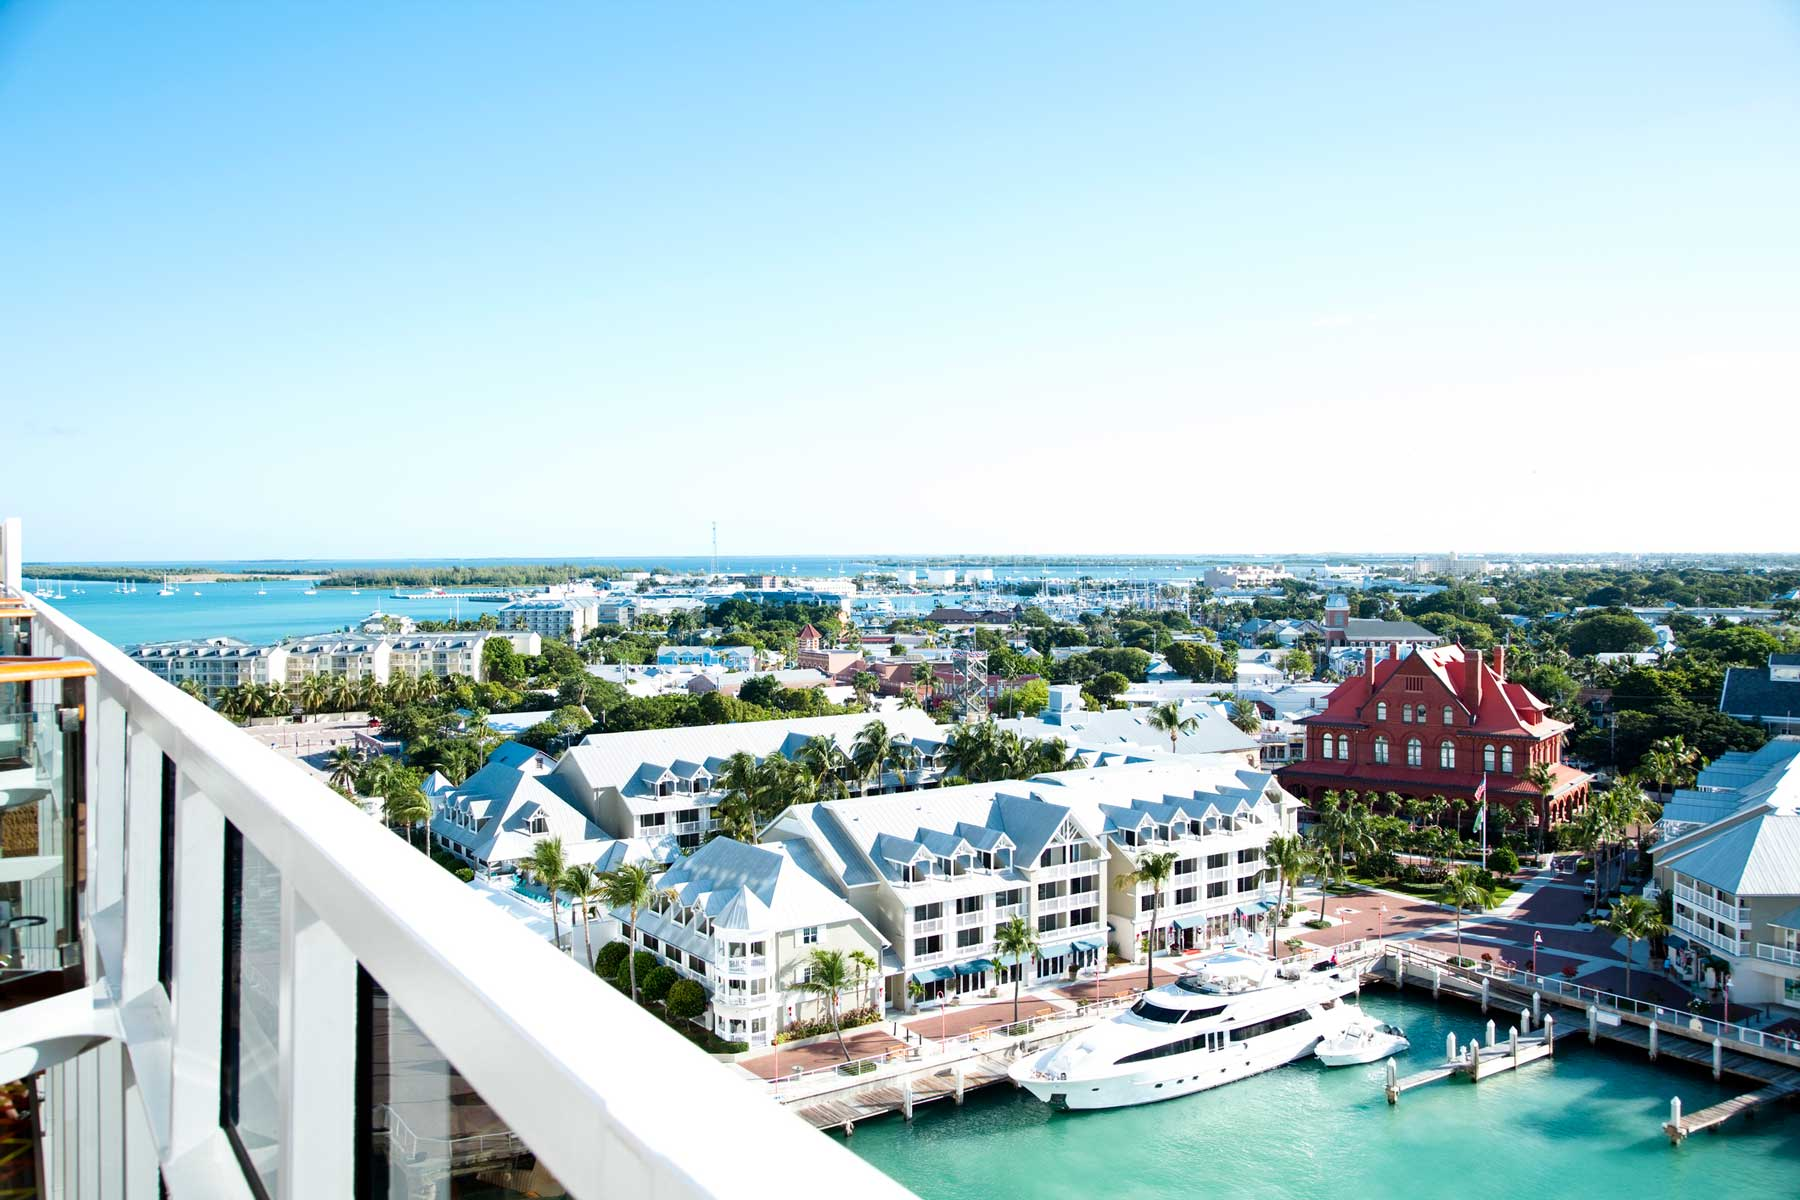 High angle view of Key West Florida